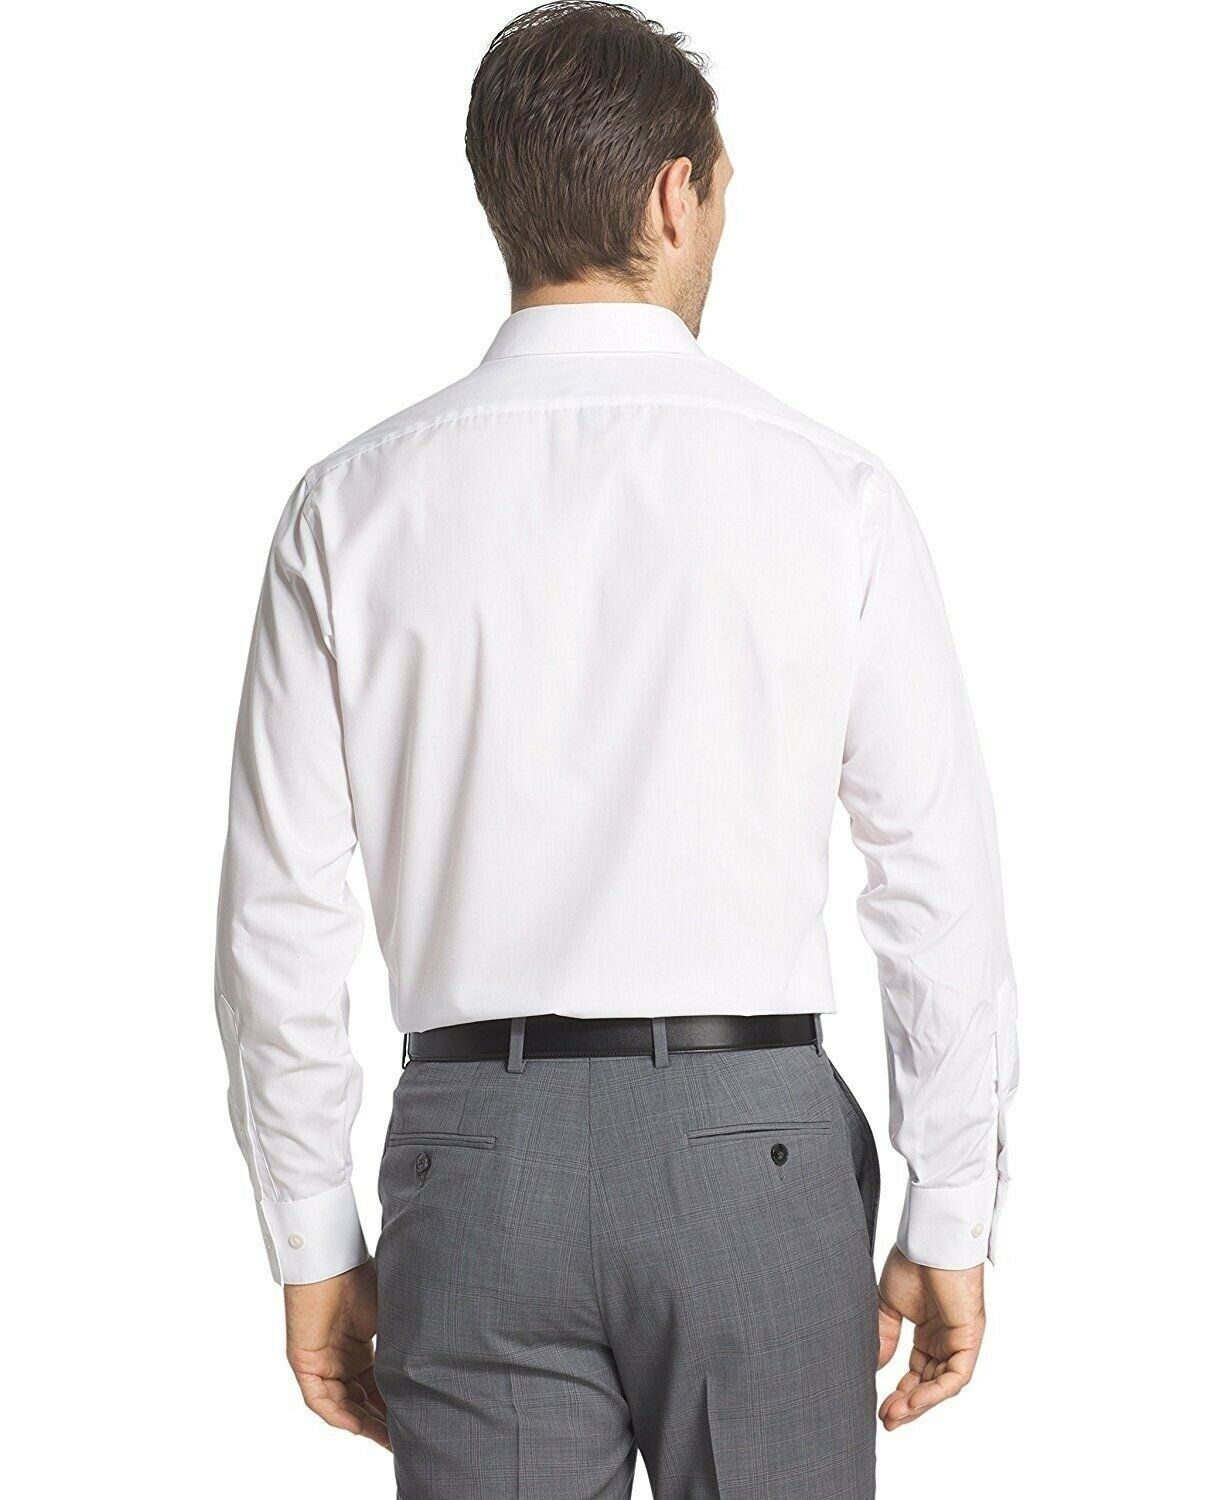 BERLIONI-ITALY-MEN-039-S-PRIME-FRENCH-CONVERTIBLE-CUFF-SOLID-DRESS-SHIRT-WHITE thumbnail 32